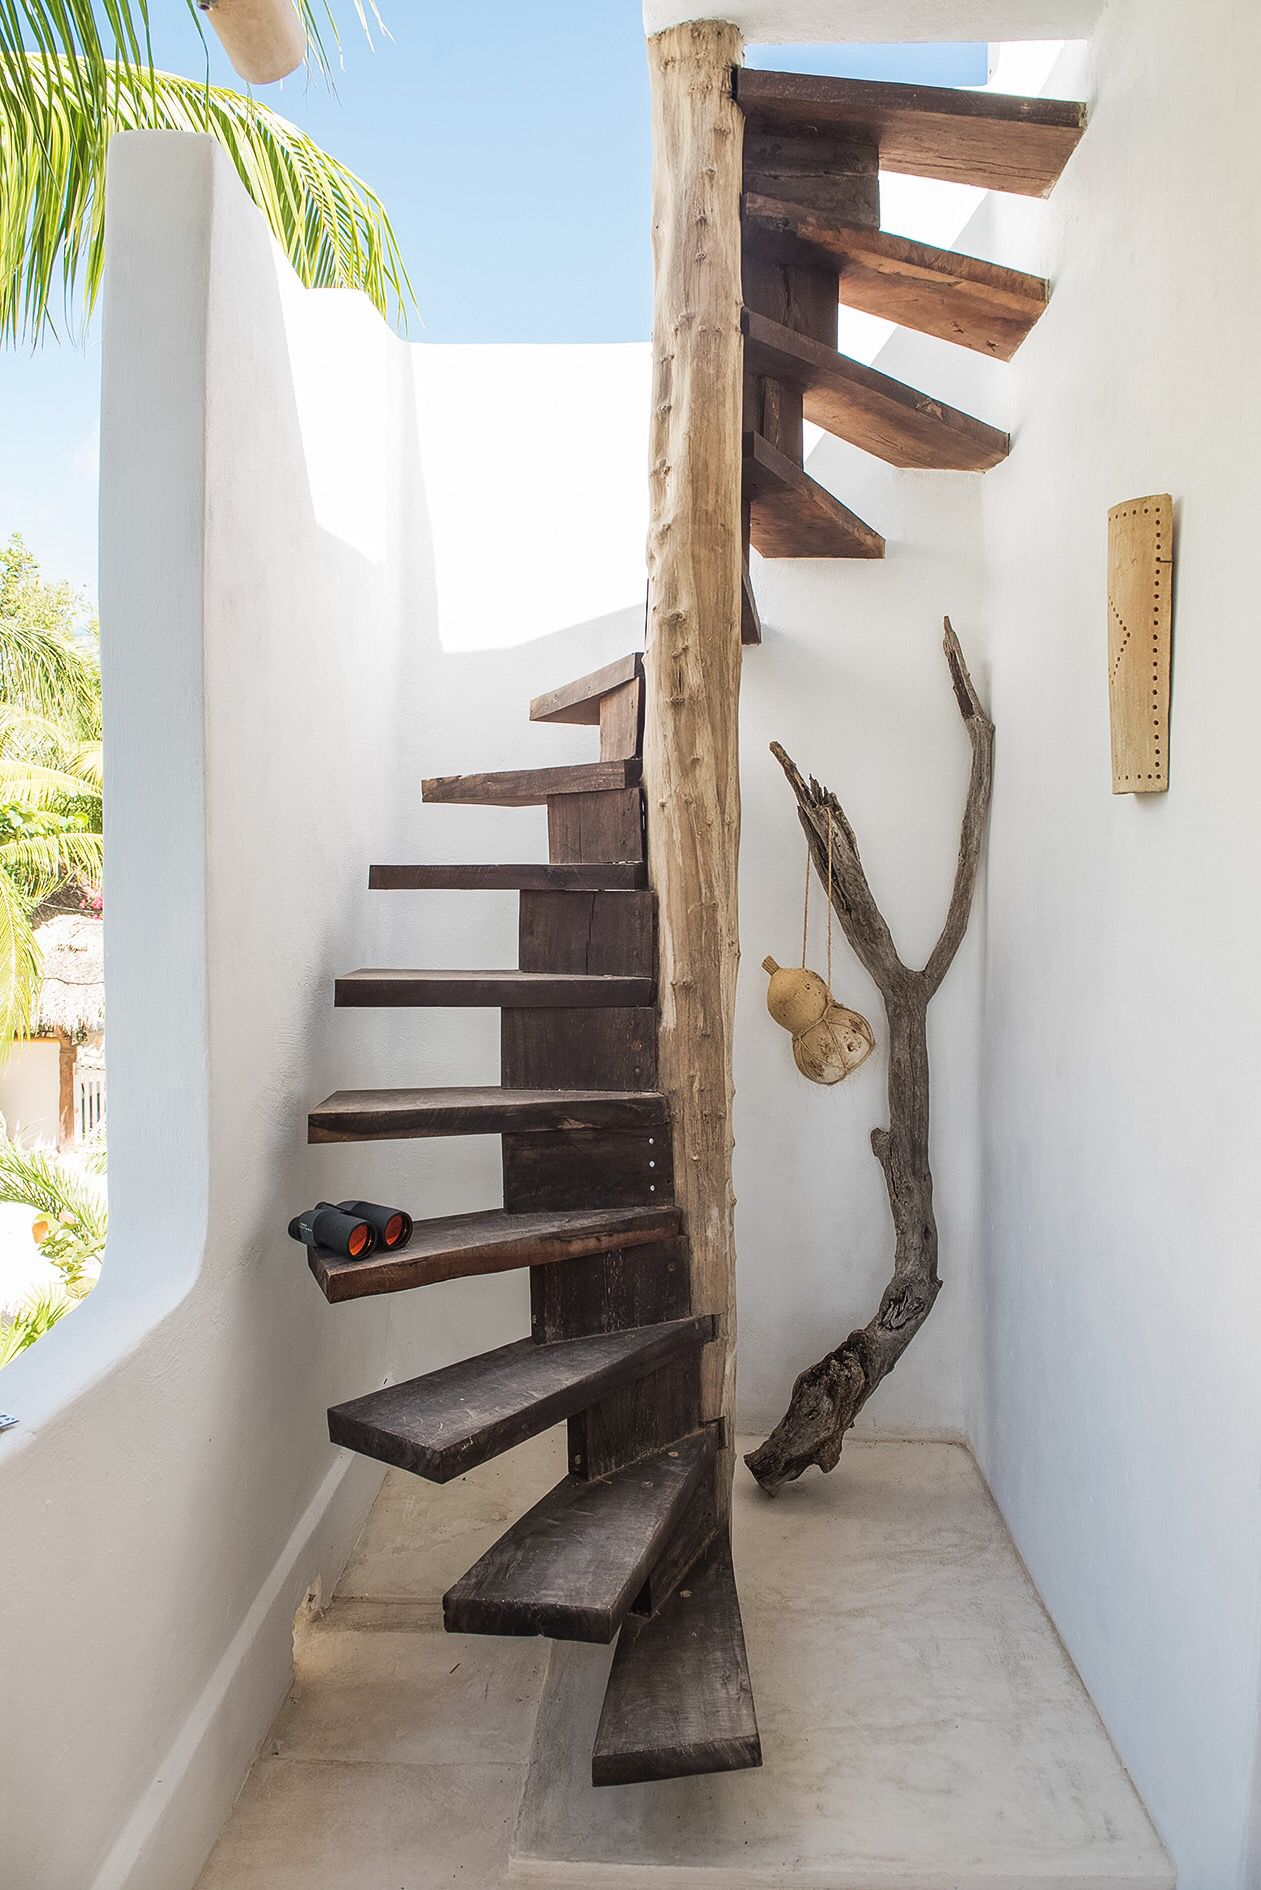 C A S A I M P A L A Isla Holbox Mexico C Marcobadalian2015 Design Island Lifestyle Stairs Design Outdoor Stairs Staircase Design